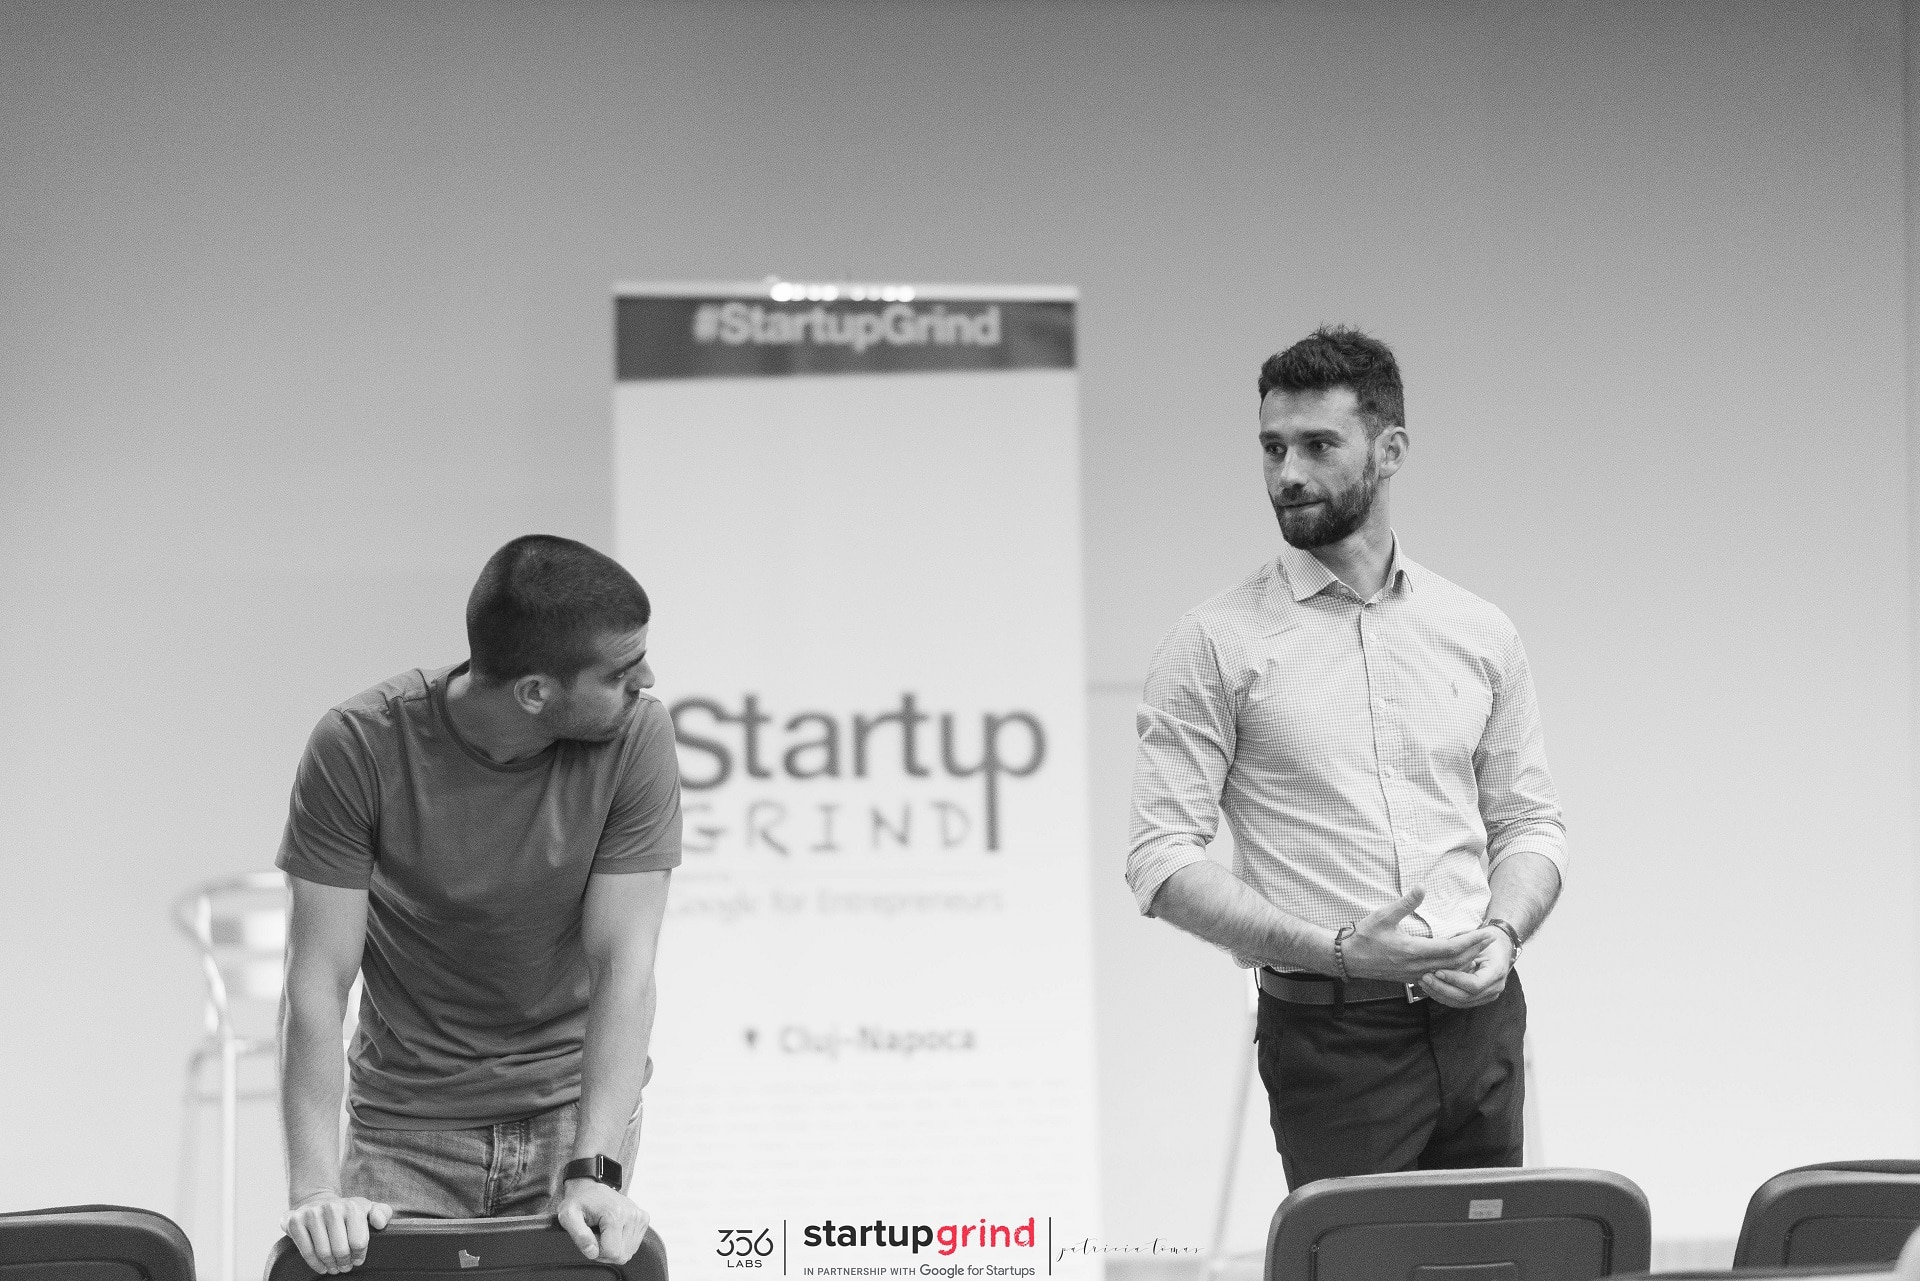 Public Speaking for Startup Grind, Cluj-Napoca